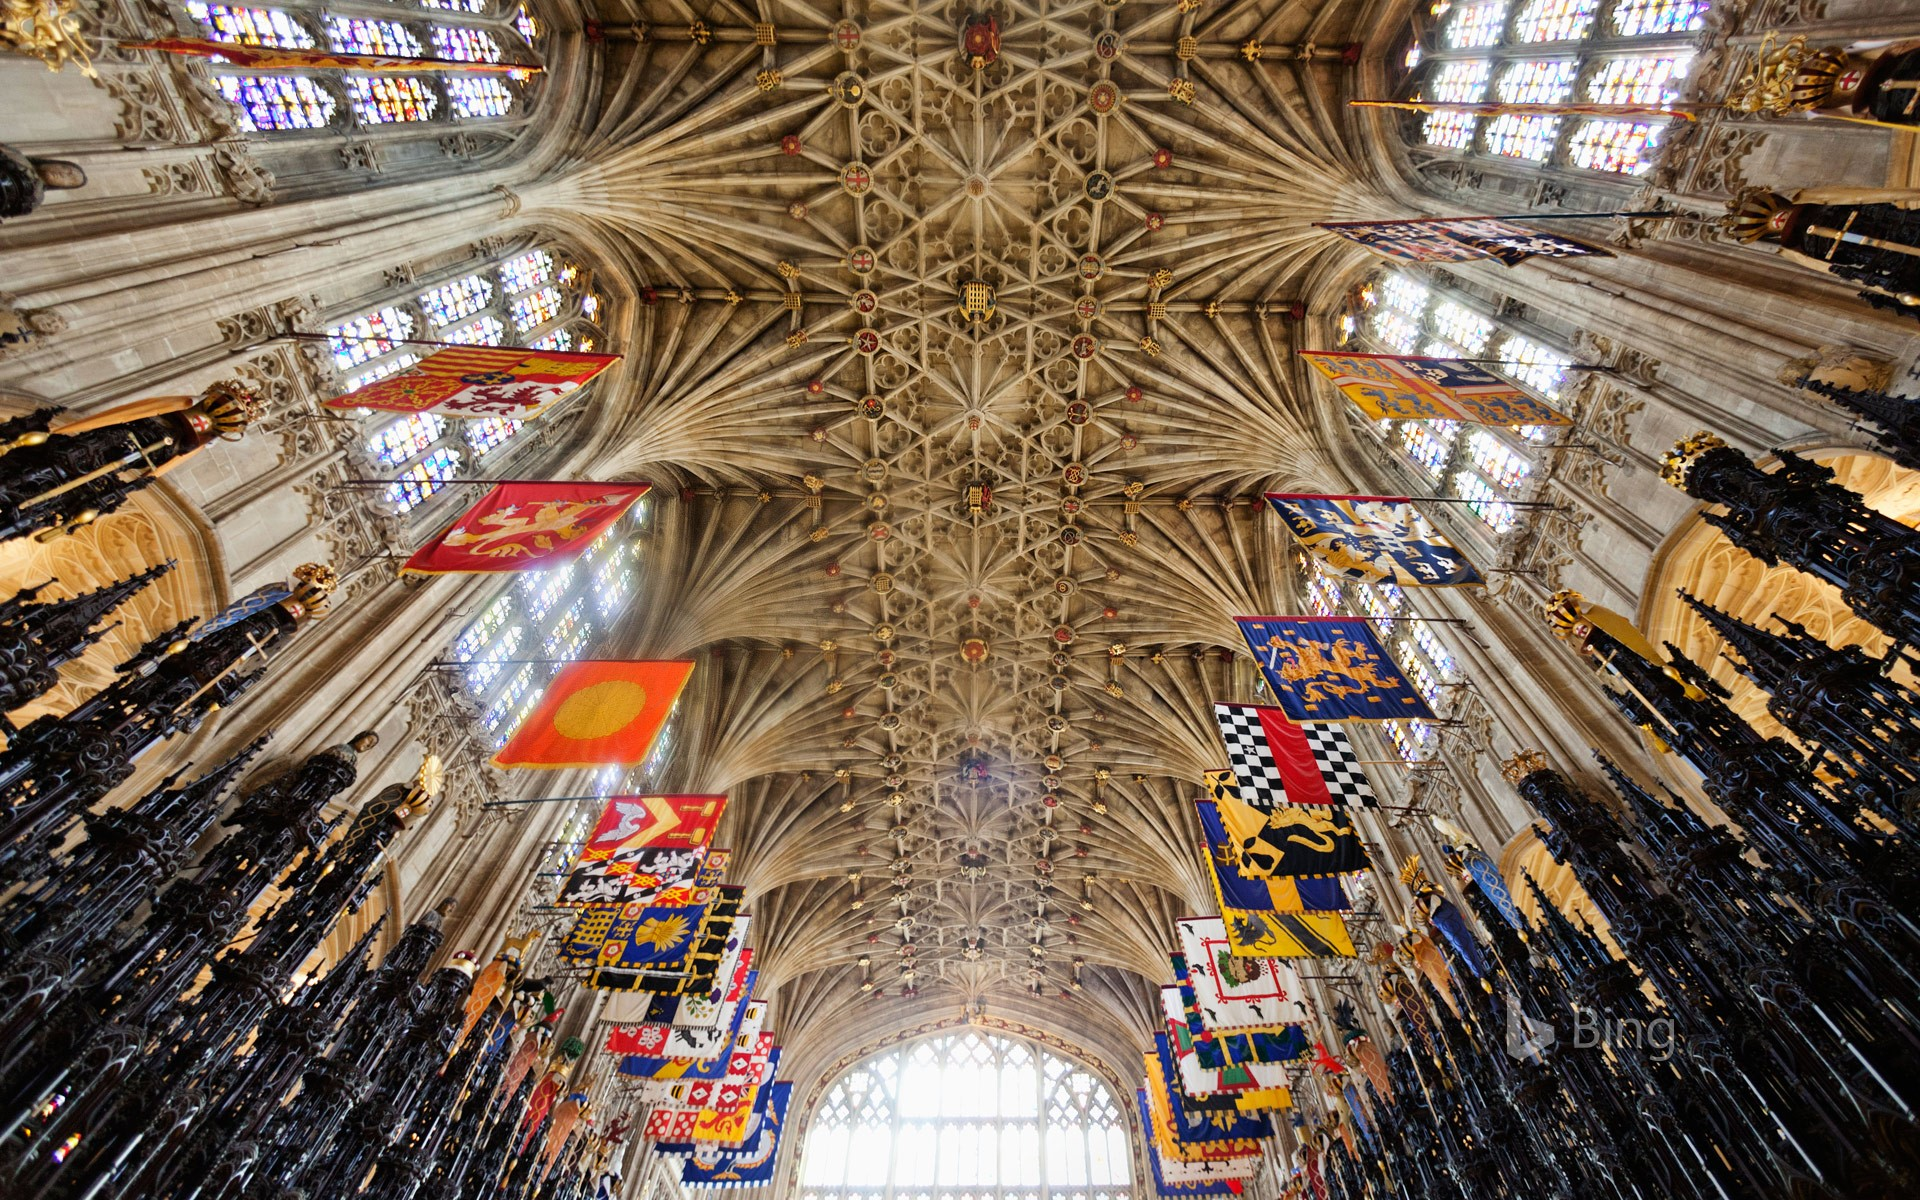 The Quire ceiling at St George's Chapel, Windsor Castle